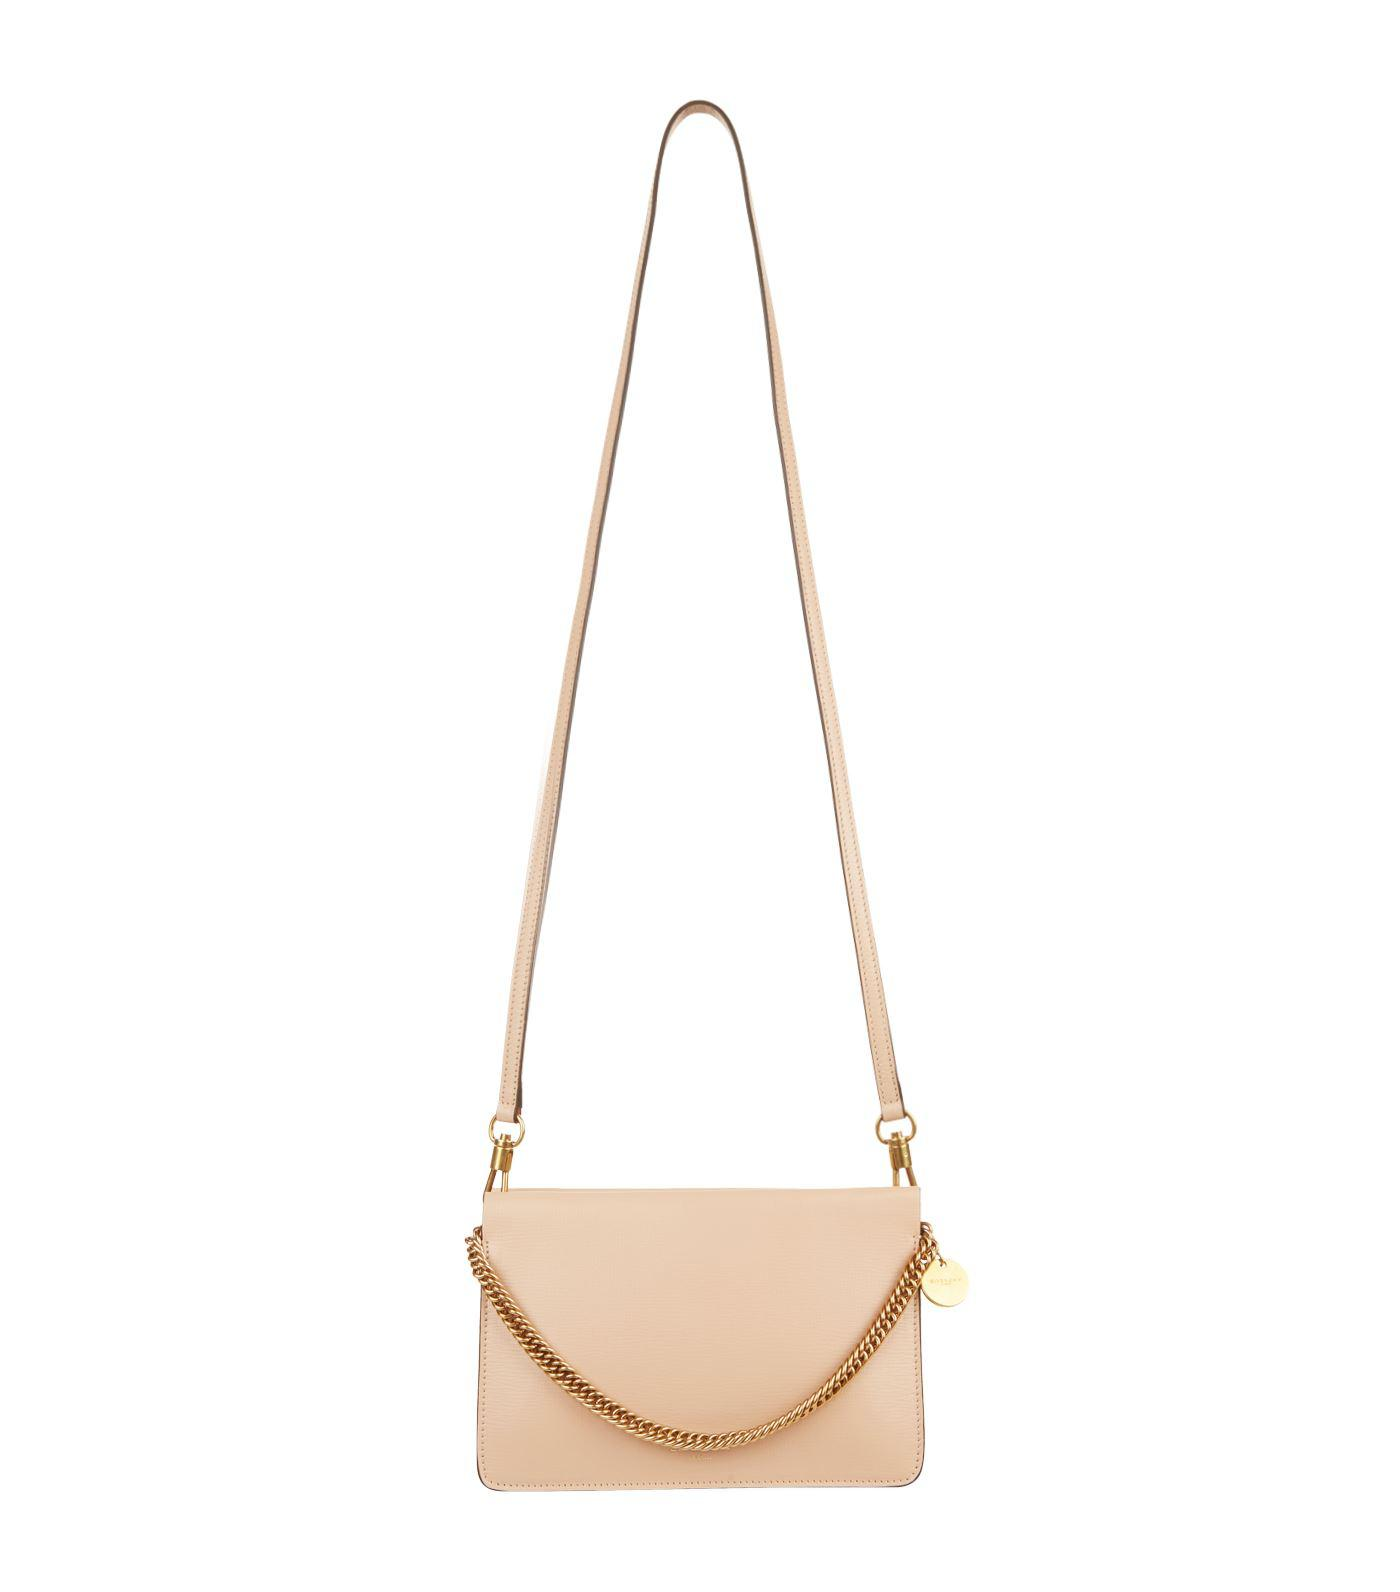 8ddd7f8911f1 ... wholesale dealer cc2b4 3f923 Givenchy. Womens Natural Leather Cross3  Cross Body Bag ...